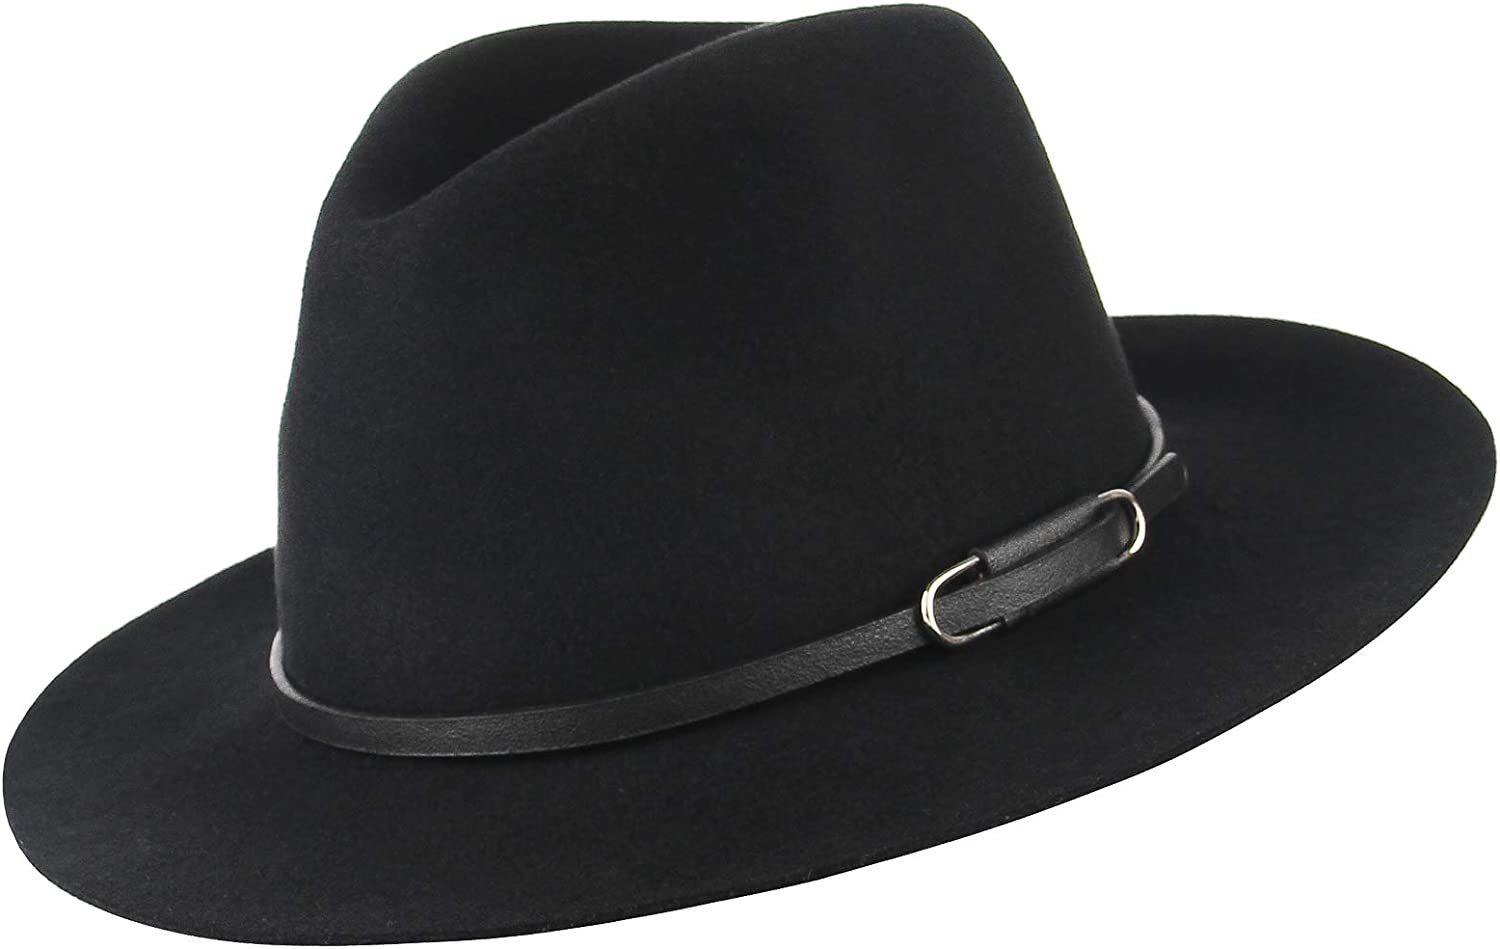 Wool Felt Fedora Hats for Men Women Unisex Classic Topper Wool Satin Lined Men/'s Top Hat Trilby Jazz Cap